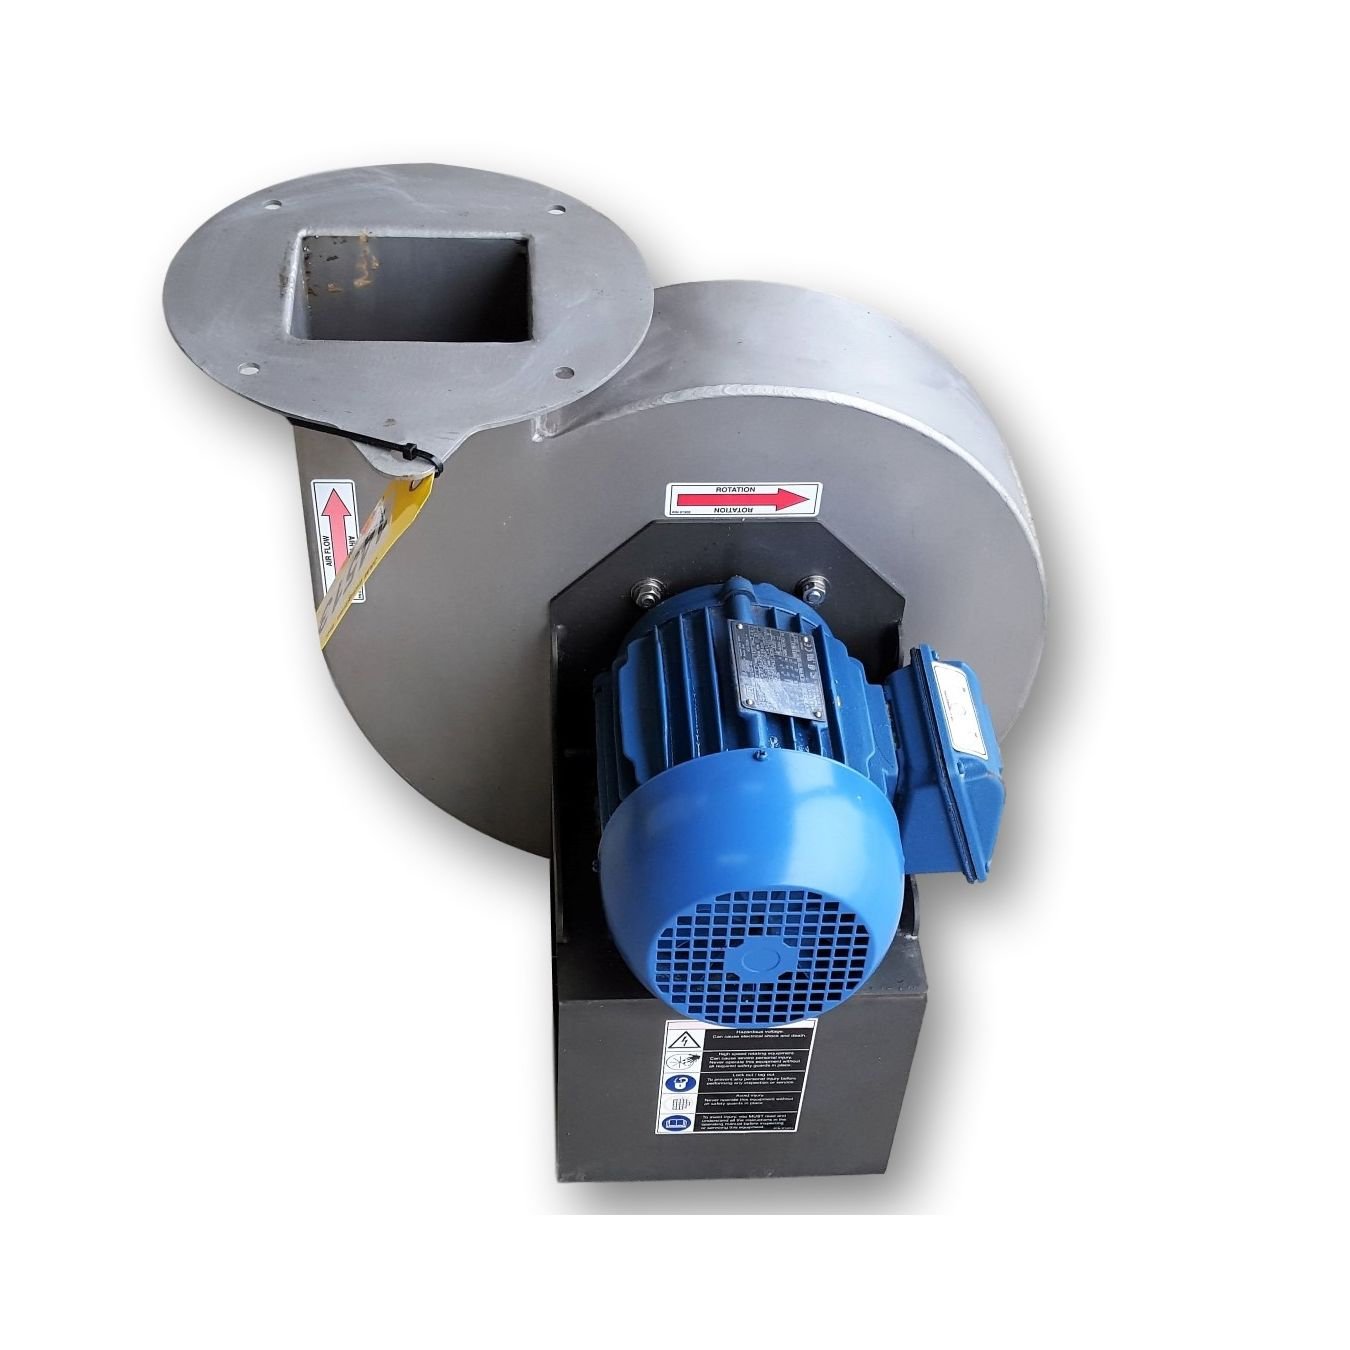 Home Fans & Blowers Centrifugal Blowers (Single Stage) Item: 14513 #0378C8